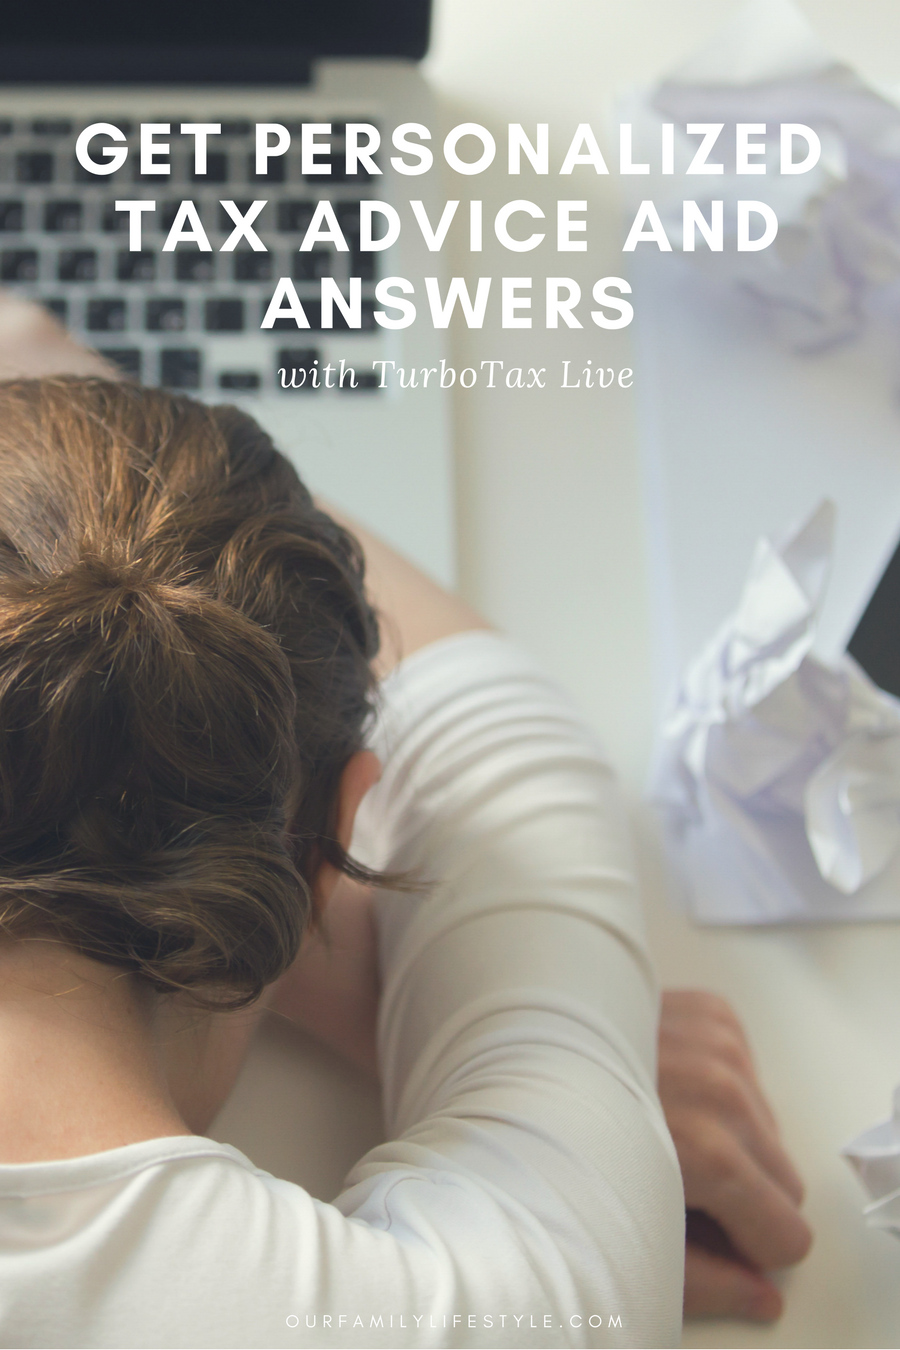 Get Personalized Tax Advice and Answers with TurboTax Live